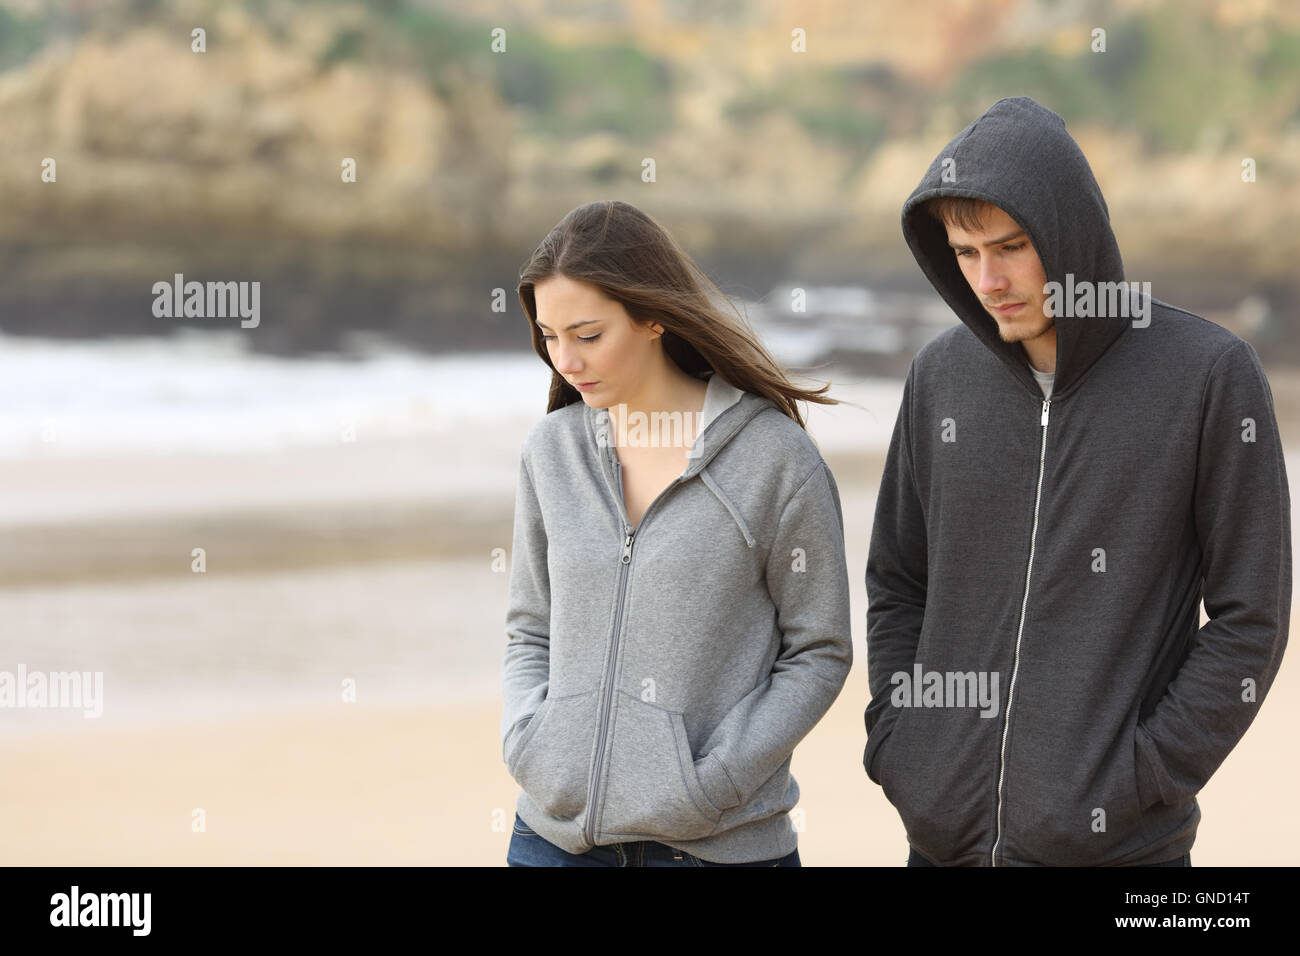 Couple of angry and sad teenagers together walking on the beach - Stock Image